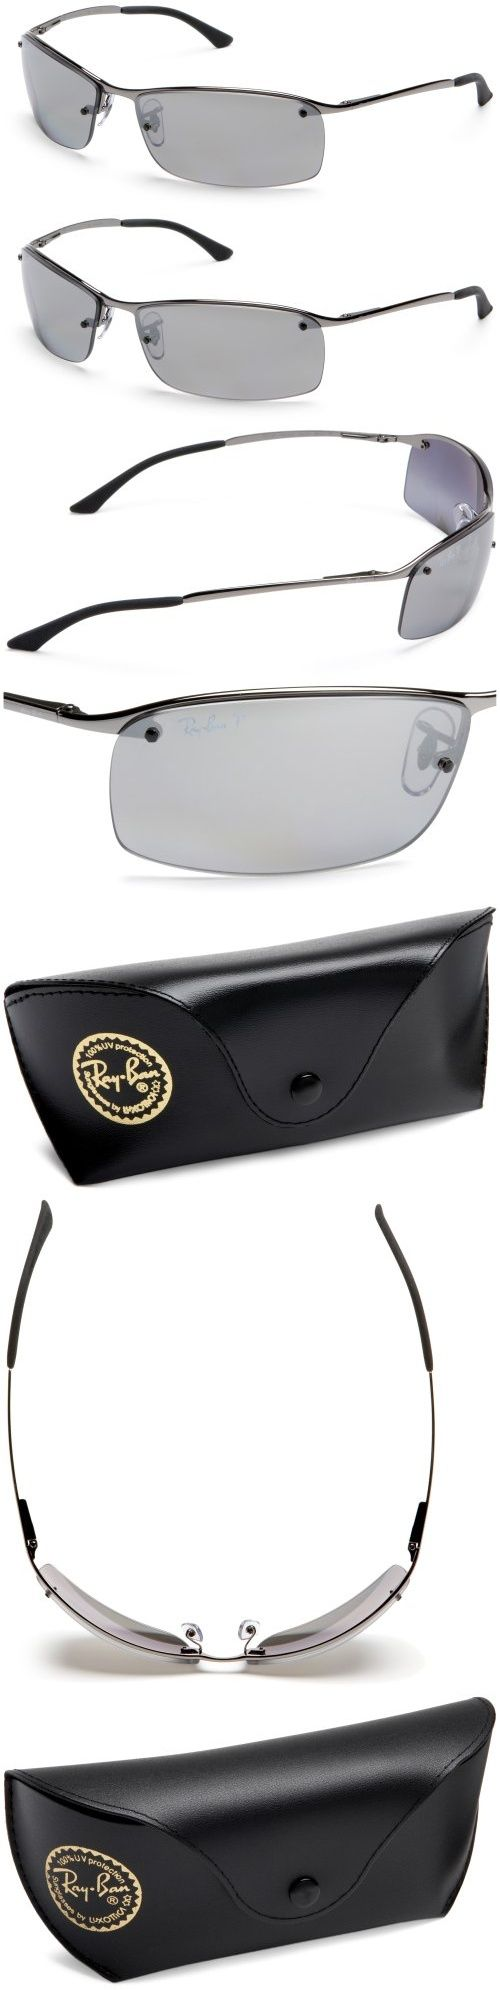 do ray ban prescription sunglasses have logo  ray ban sunglasses 63 mm slick shades that like speed. the features a lightweight semi rimless rectangular shape. the temples feature a classic ray ban?